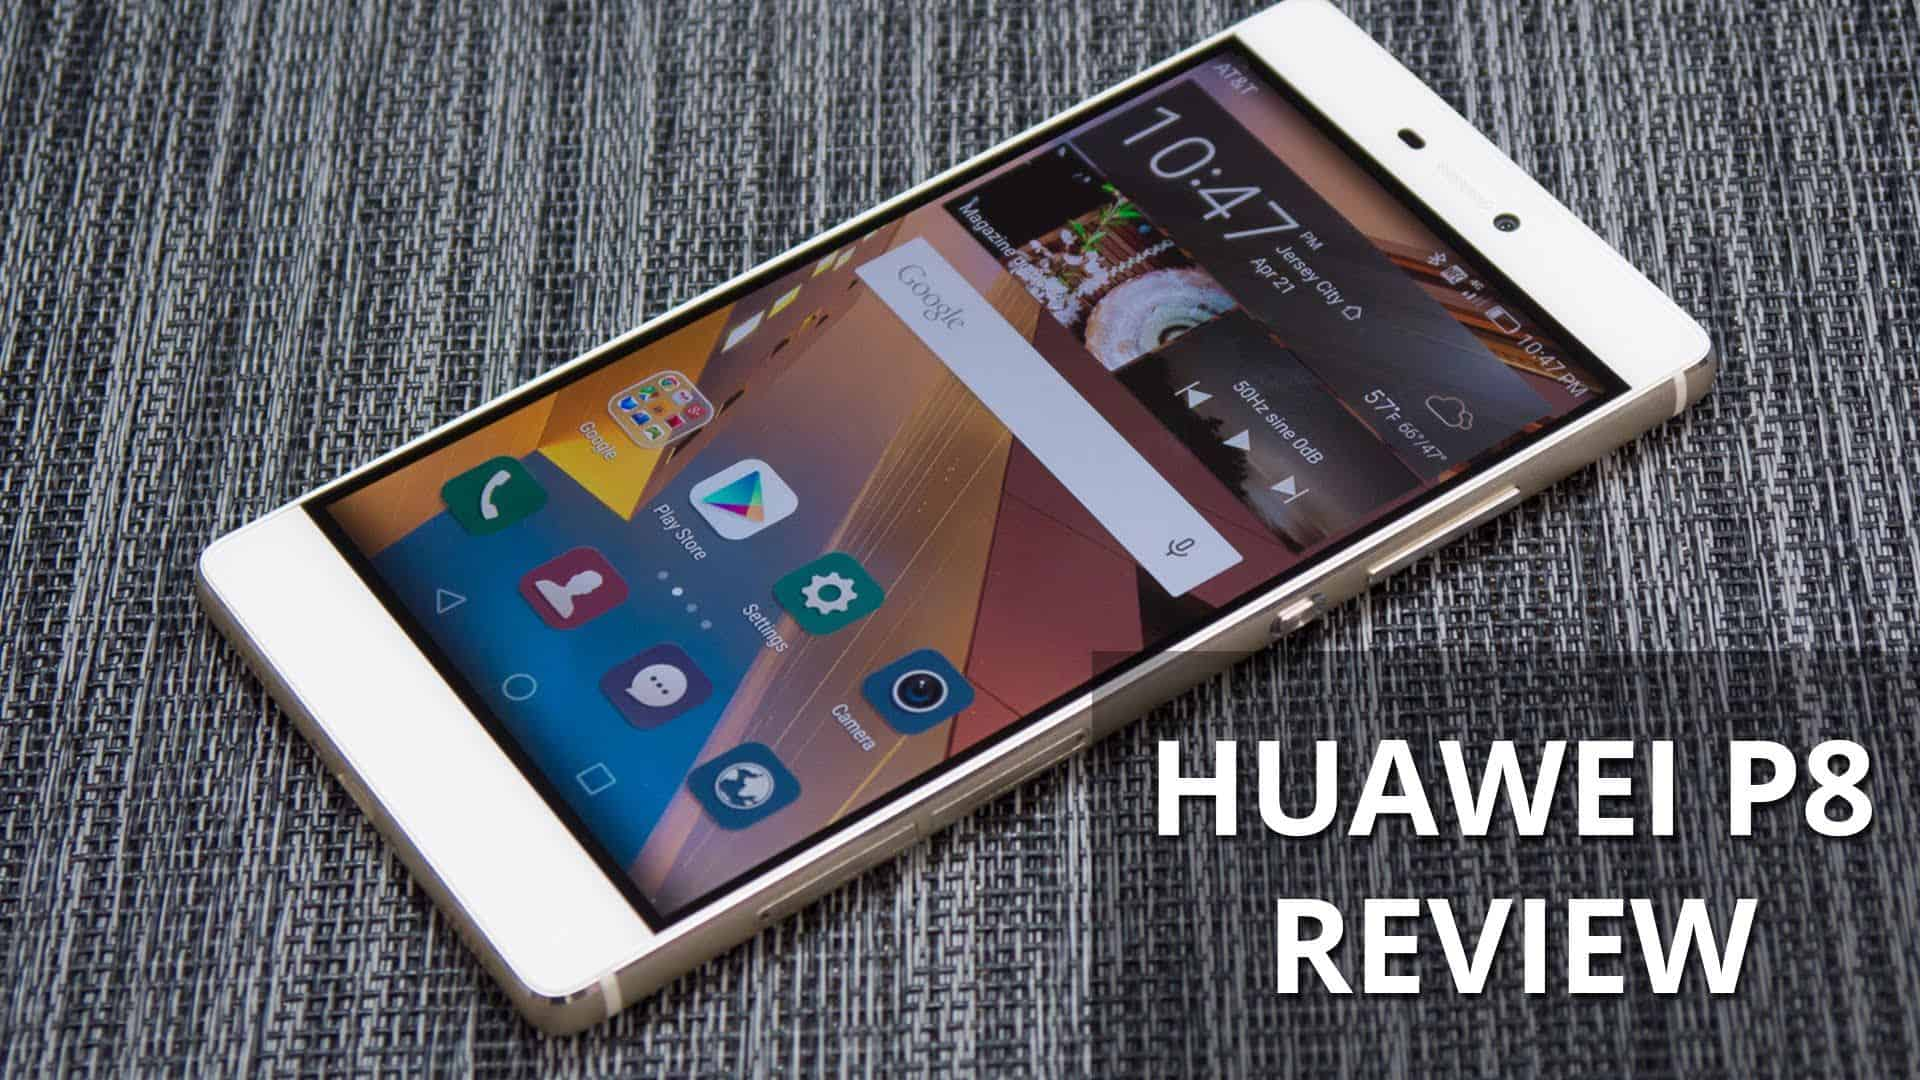 amazon Huawei P8 reviews Huawei P8 on amazon newest Huawei P8 prices of Huawei P8 Huawei P8 deals best deals on Huawei P8 buying a Huawei P8 lastest Huawei P8 what is a Huawei P8 Huawei P8 at amazon where to buy Huawei P8 where can i you get a Huawei P8 online purchase Huawei P8 Huawei P8 sale off Huawei P8 discount cheapest Huawei P8 Huawei P8 for sale